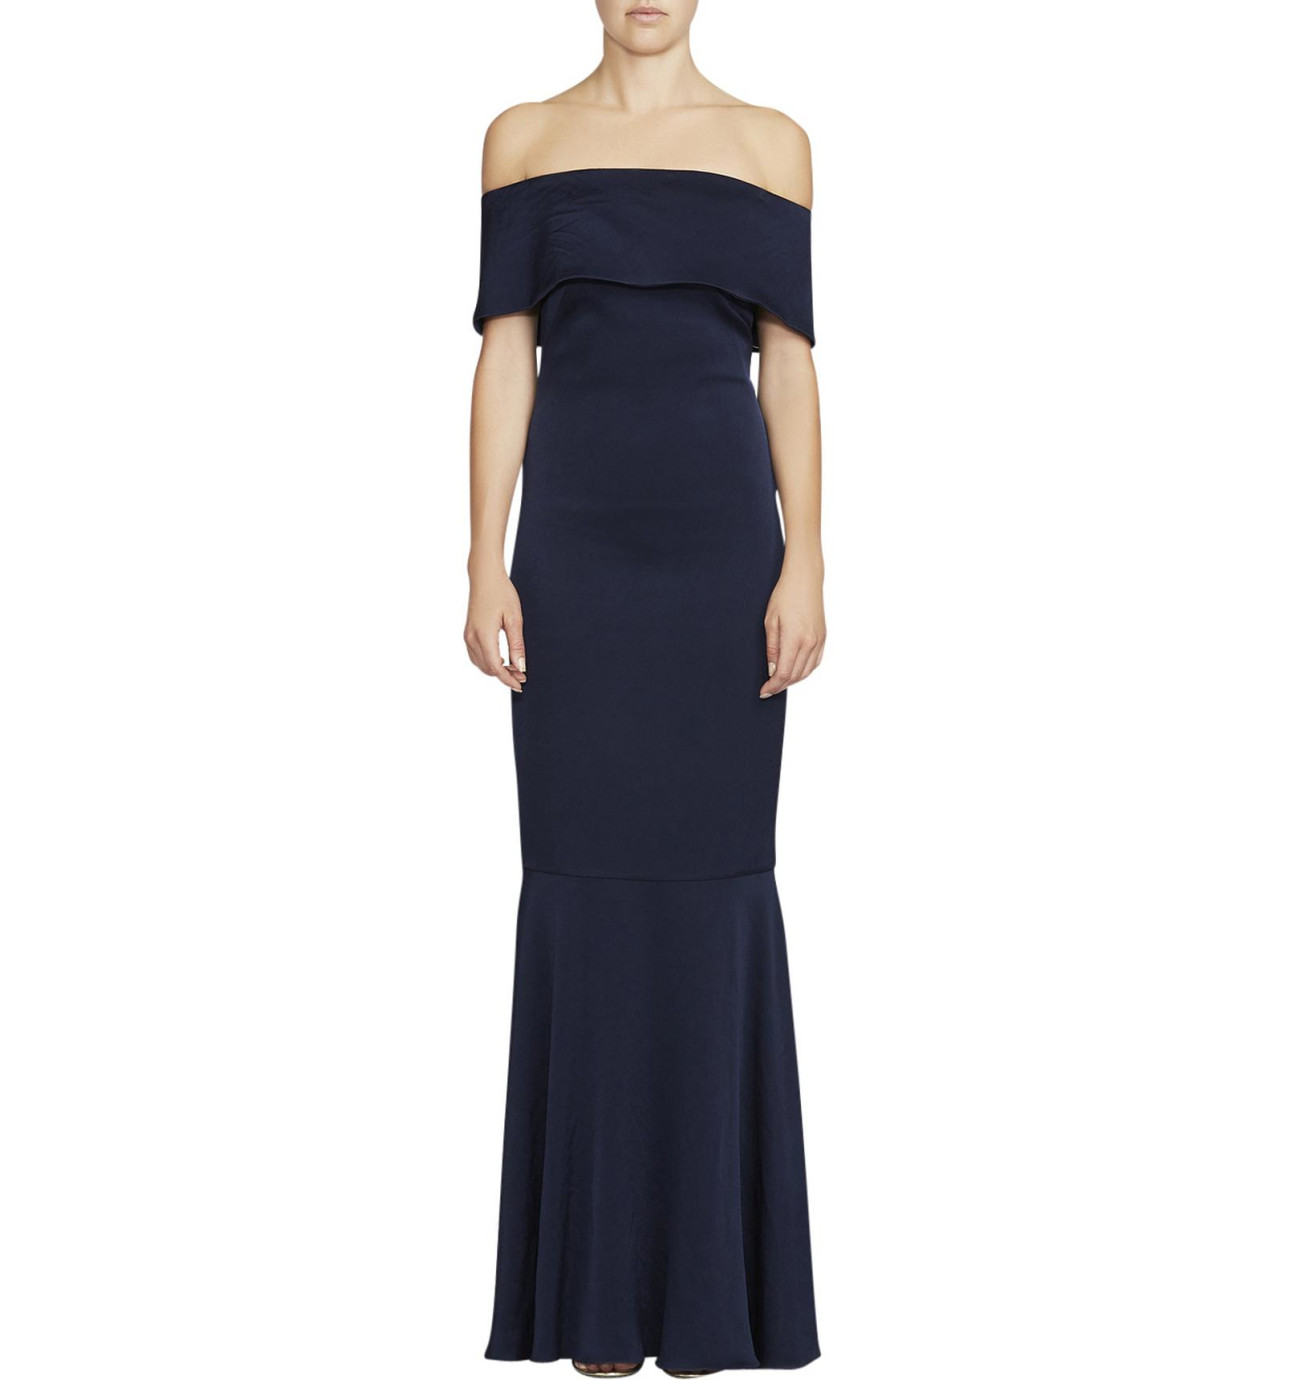 Camilla and marc navy lace dress